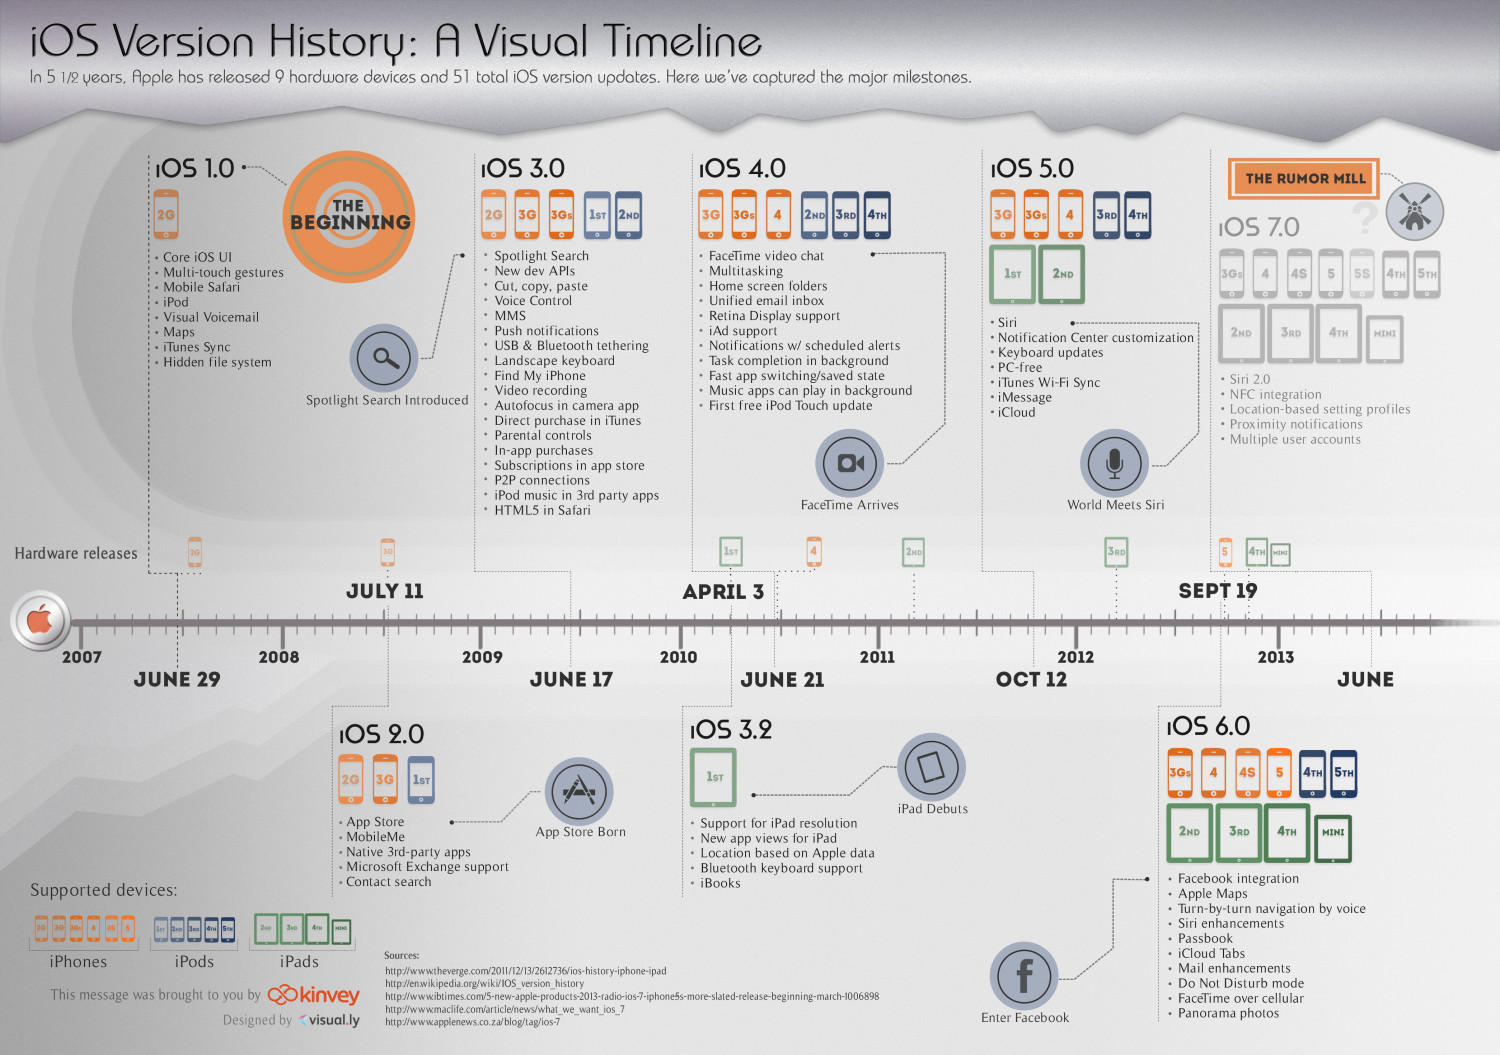 iOS Version History: A Visual Timeline | Visual.ly